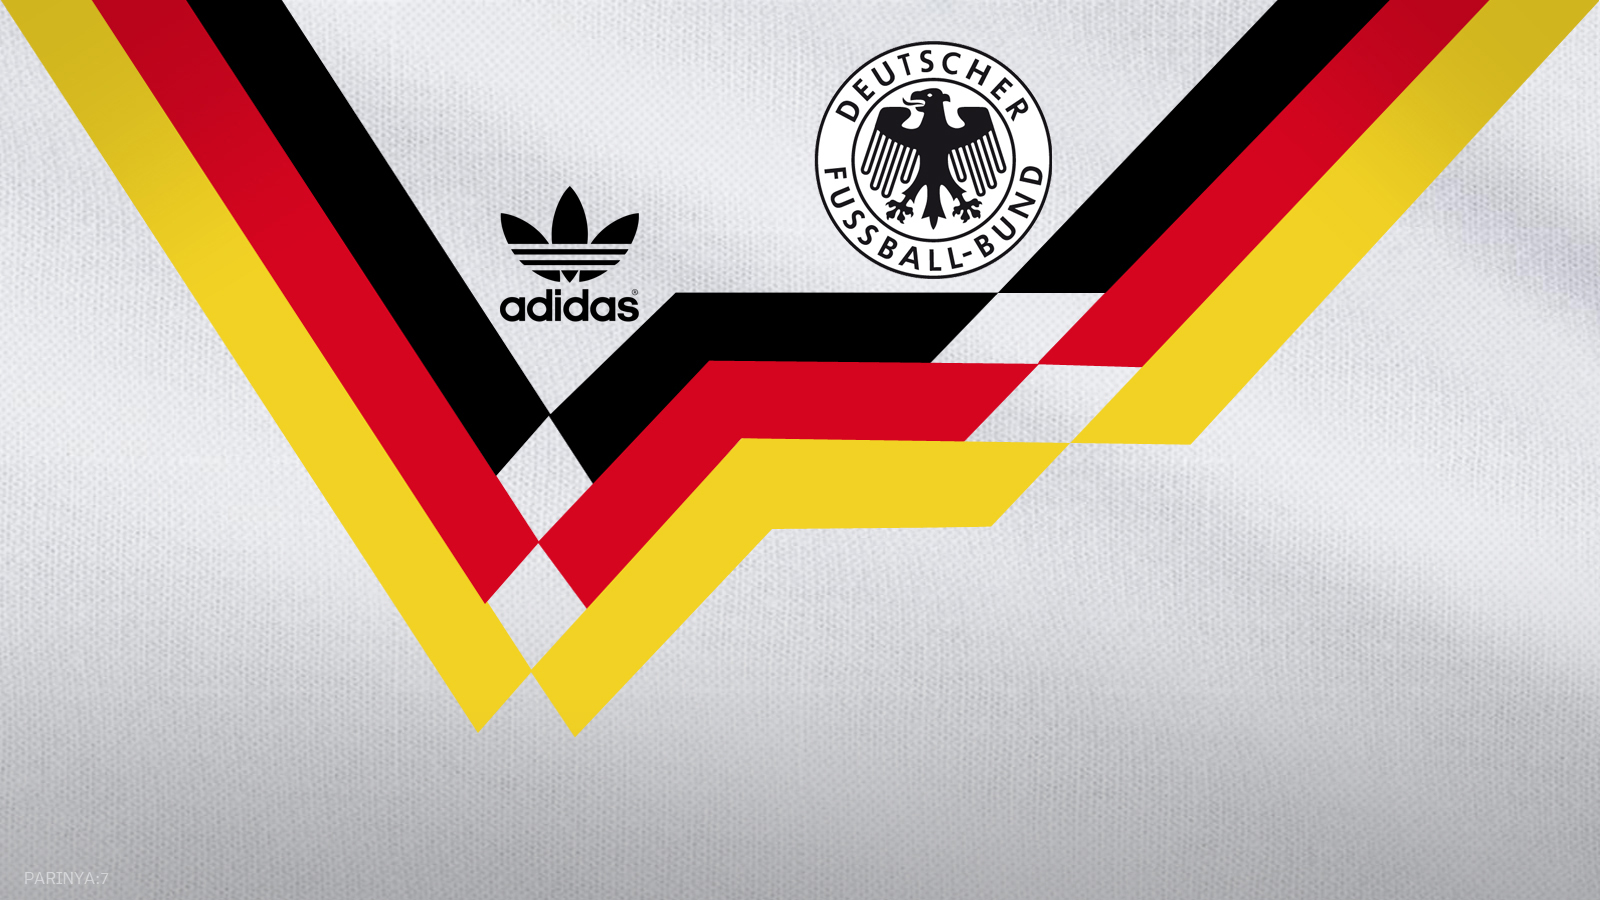 GERMANY Football 1990 Wallpaper Wallpaper and Background Image | 1600x900 | ID:814596 ...